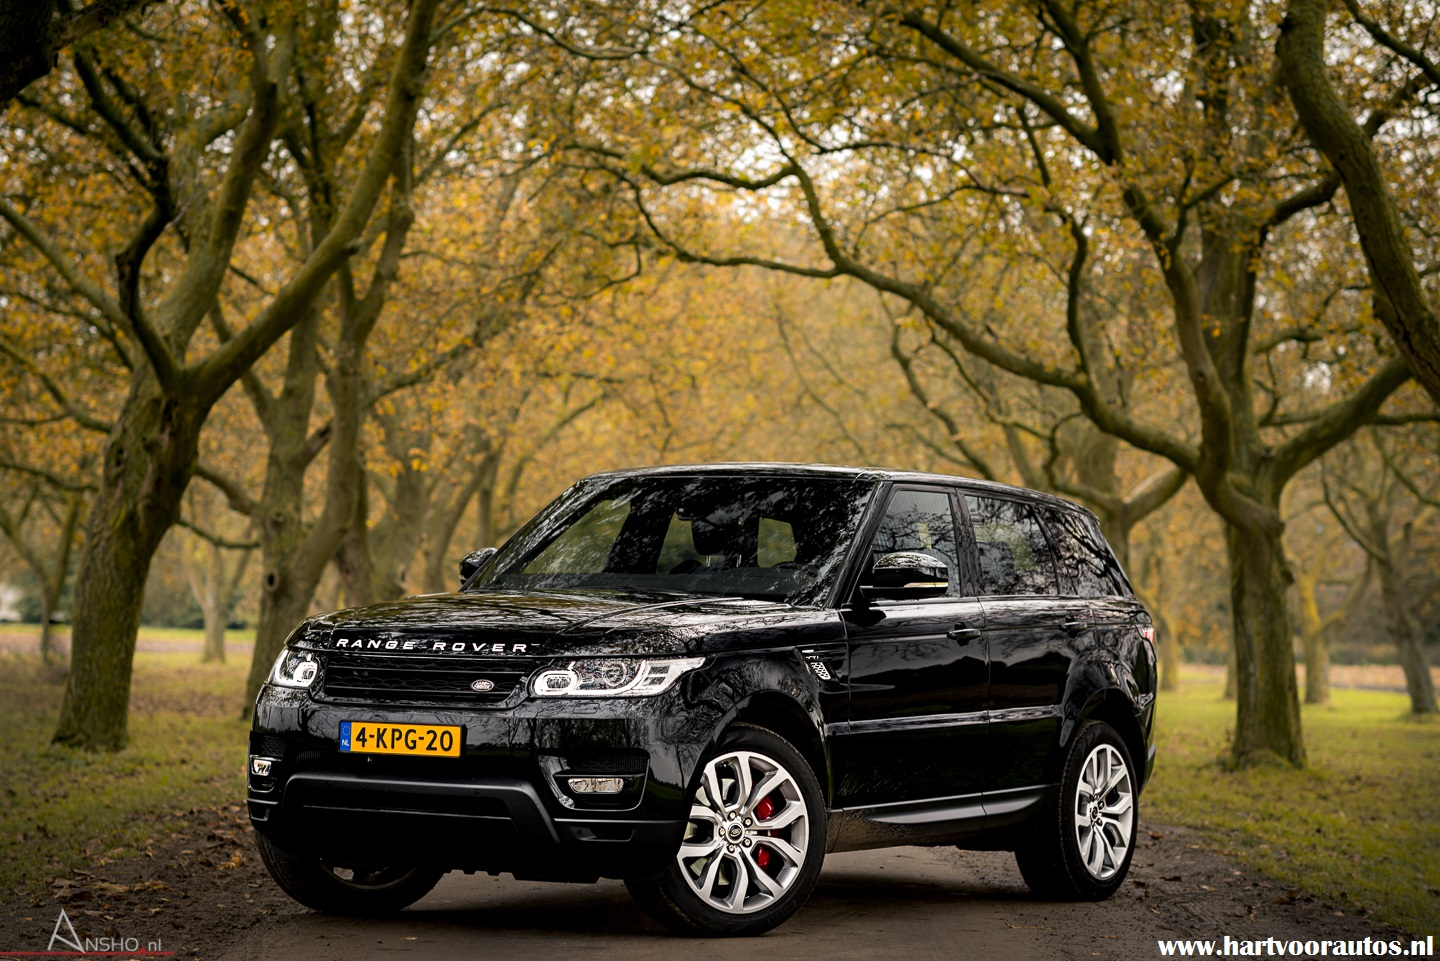 Range Rover Sport 5.0 V8 Supercharged - www.hartvoorautos.nl